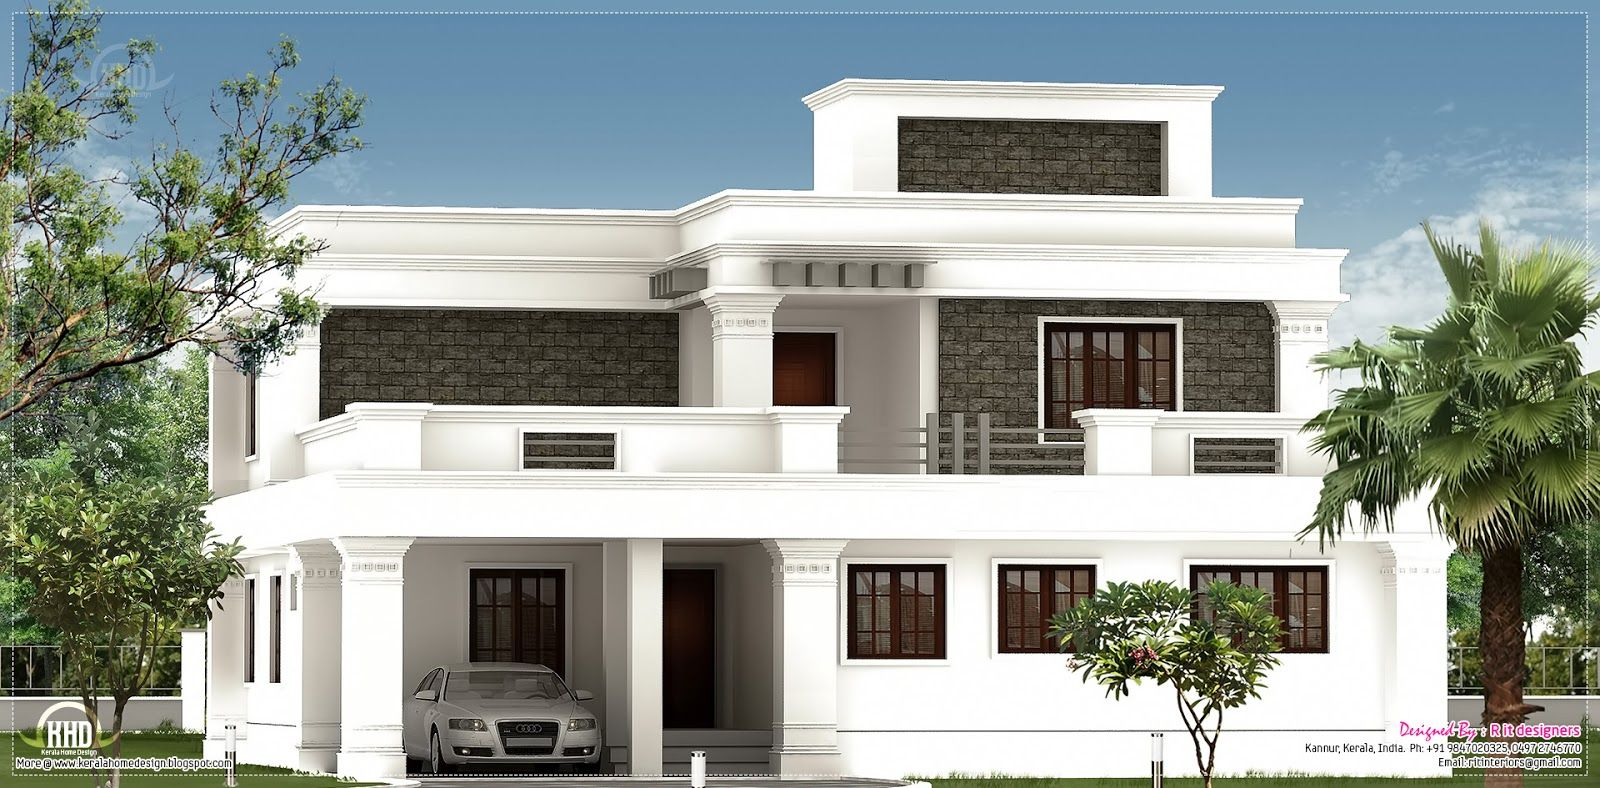 Flat roof homes designs flat roof villa exterior in 2400 for Home front design model